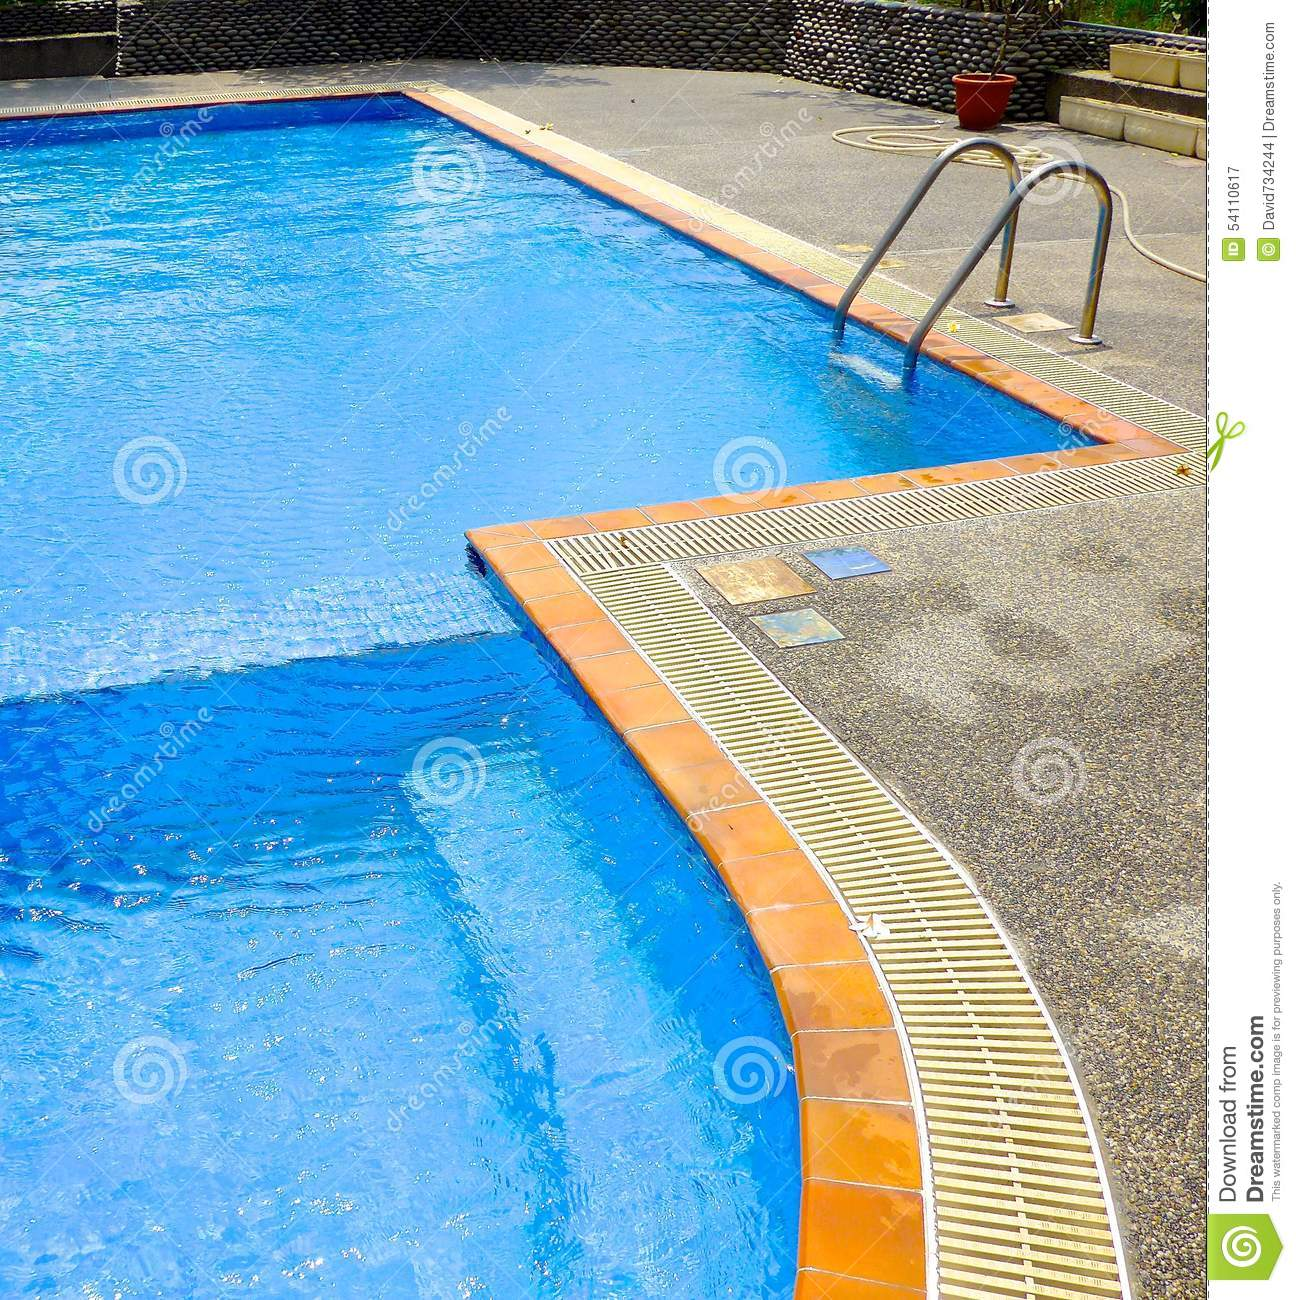 The Close View Of Swimming Pool Stock Photo Image 54110617